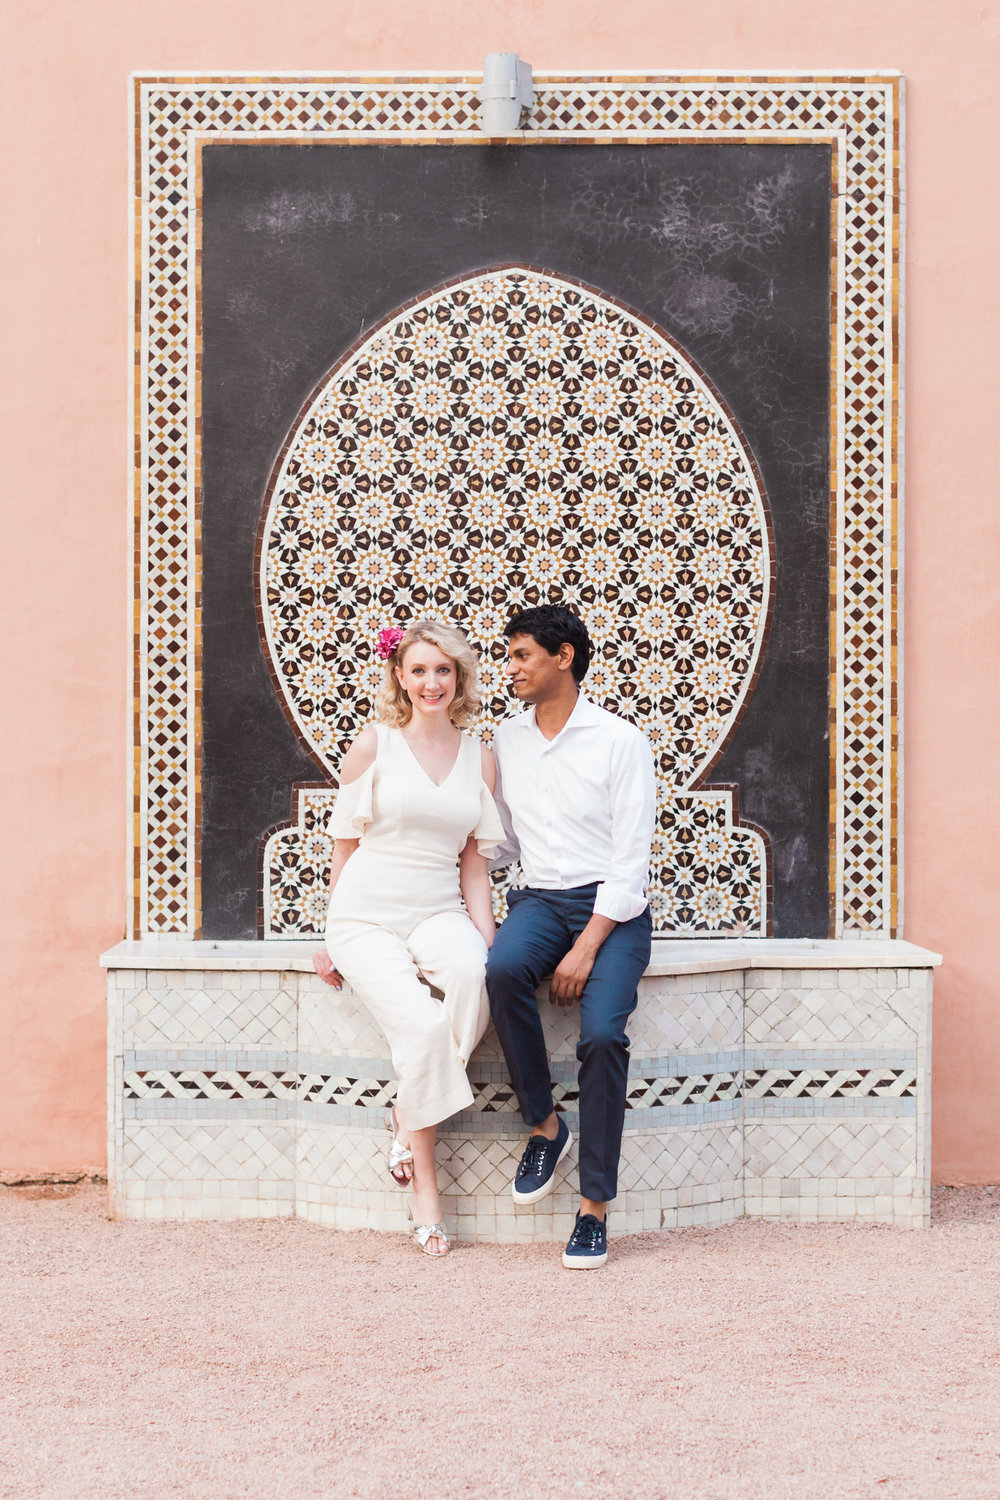 engagement-session-la-mamounia-marrakech-morocco-mariaraophotography-10web.jpg